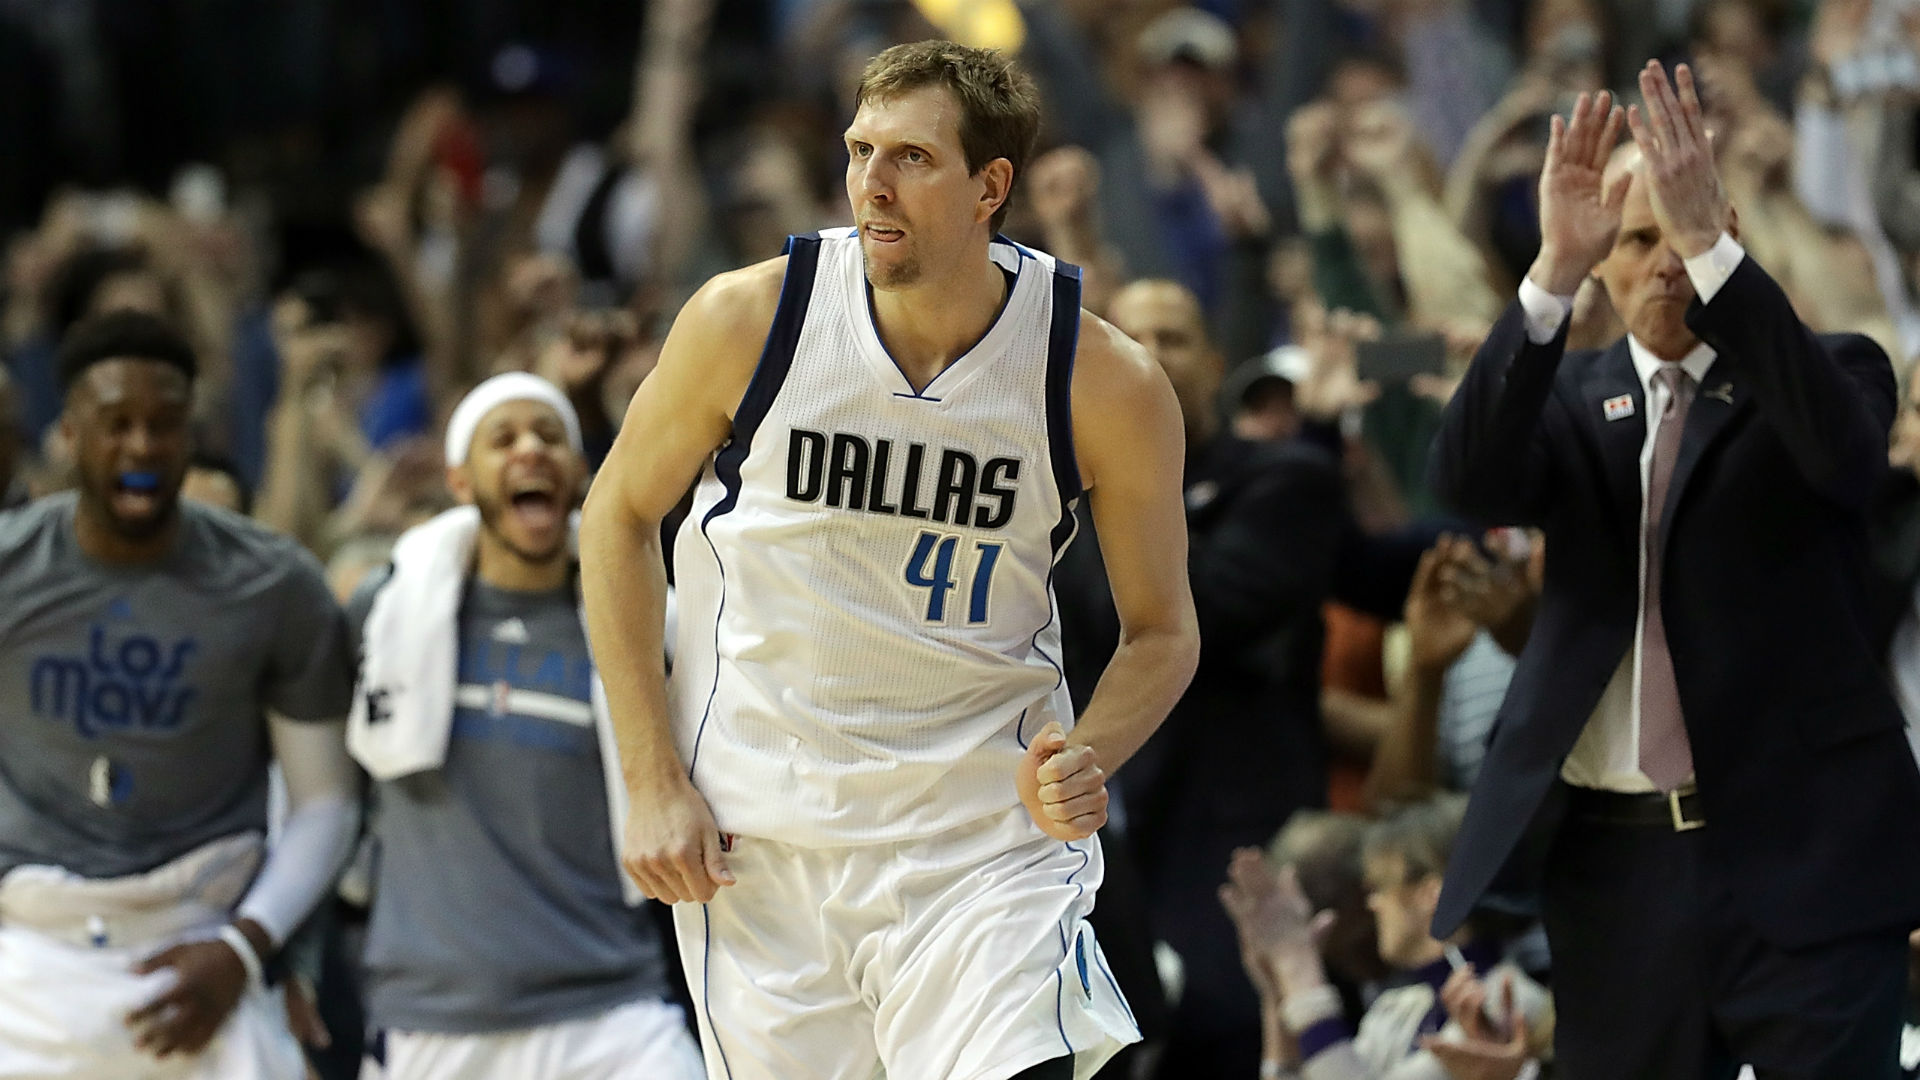 Dirk Nowitzki named Teammate of the Year